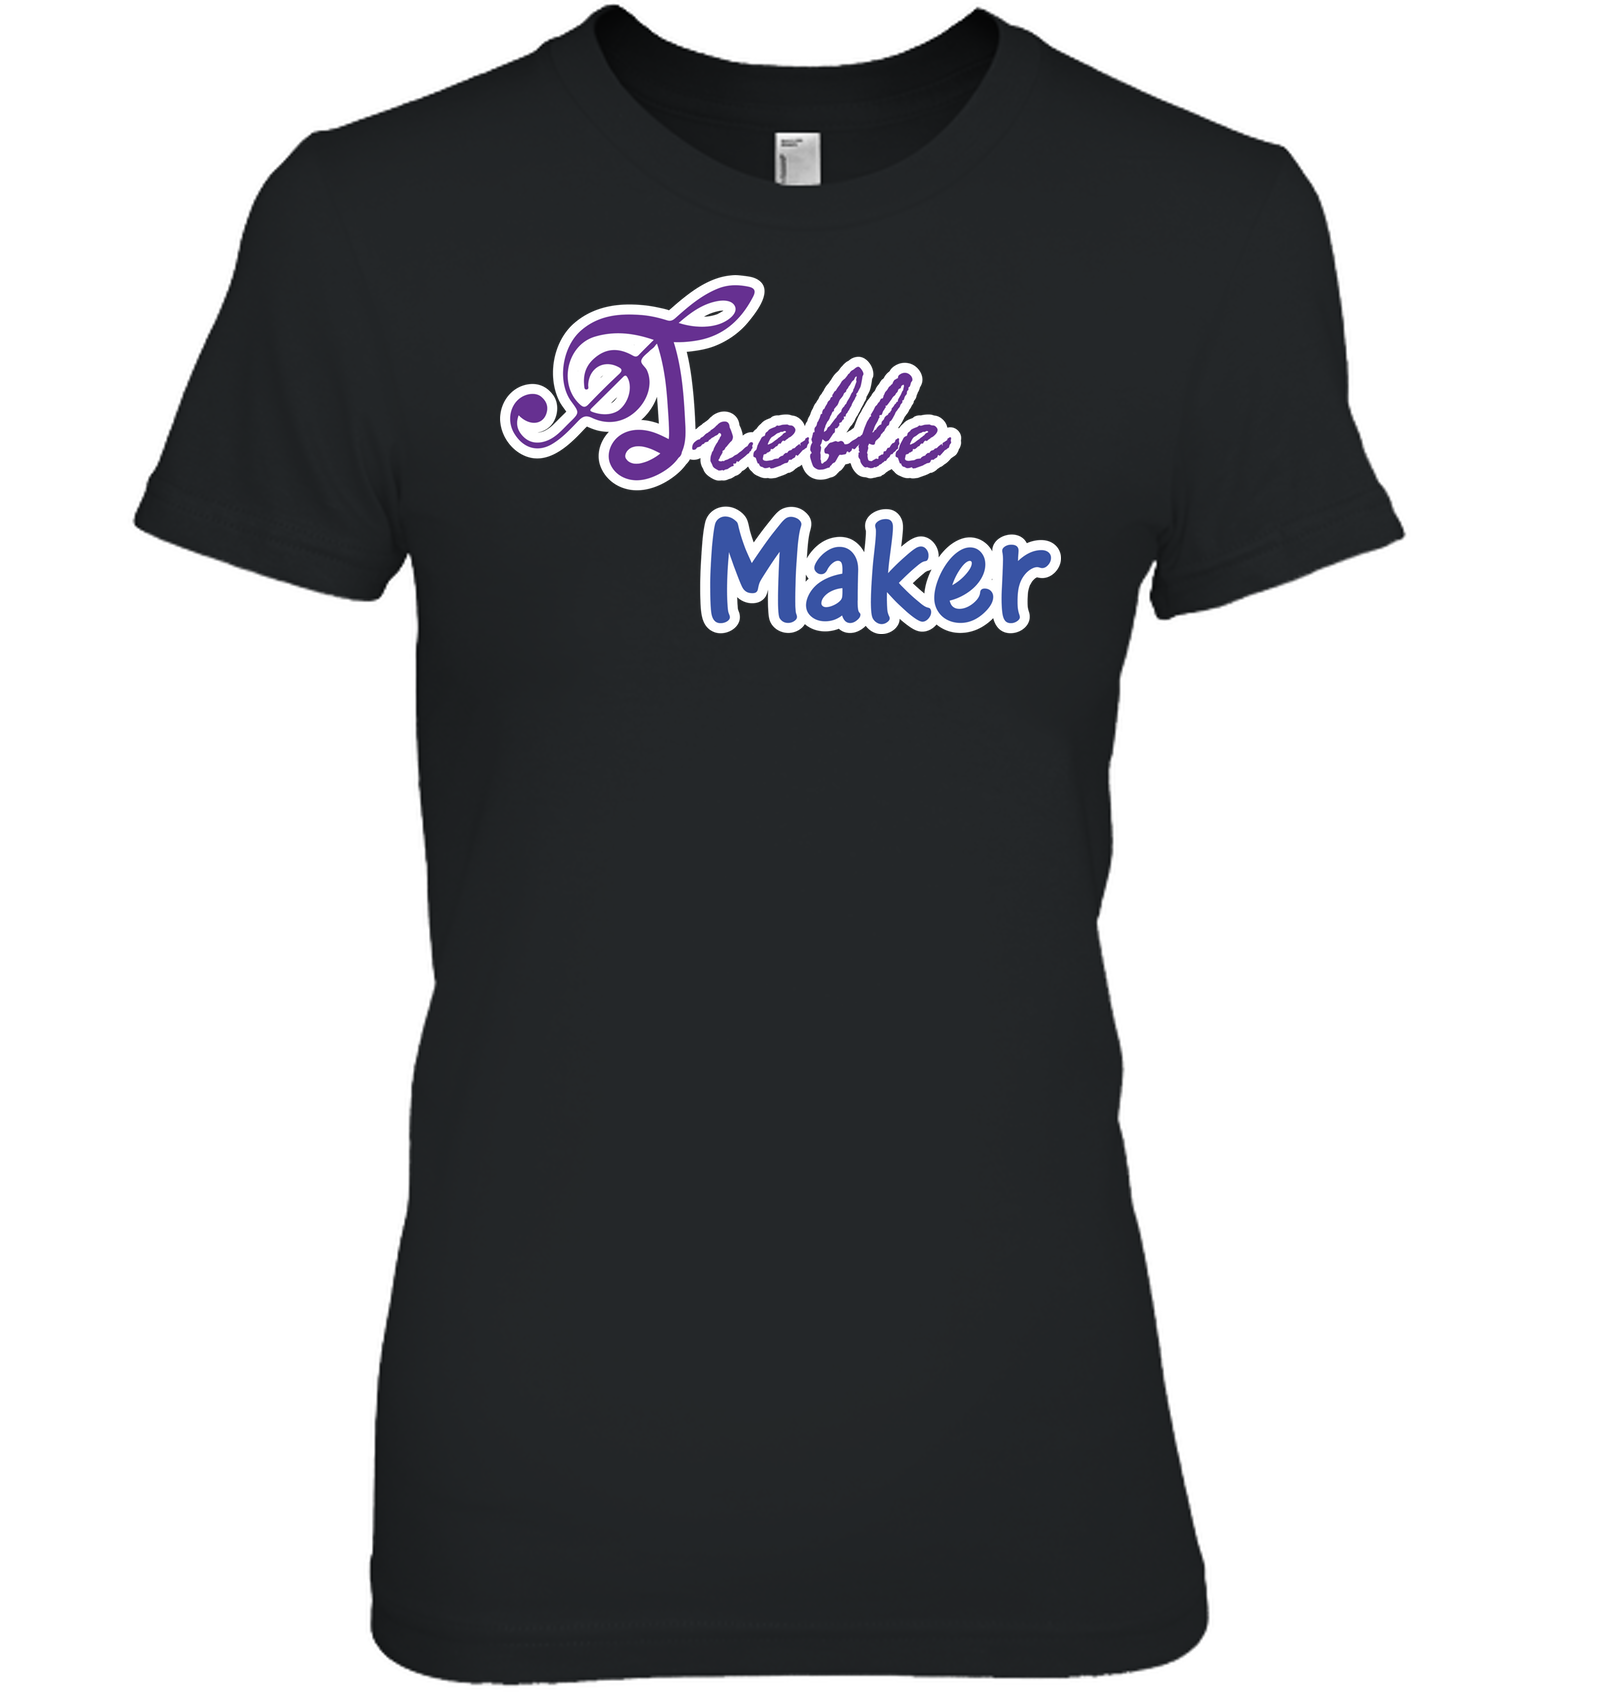 Treble Maker plain and simple - Hanes Women's Nano-T® T-Shirt